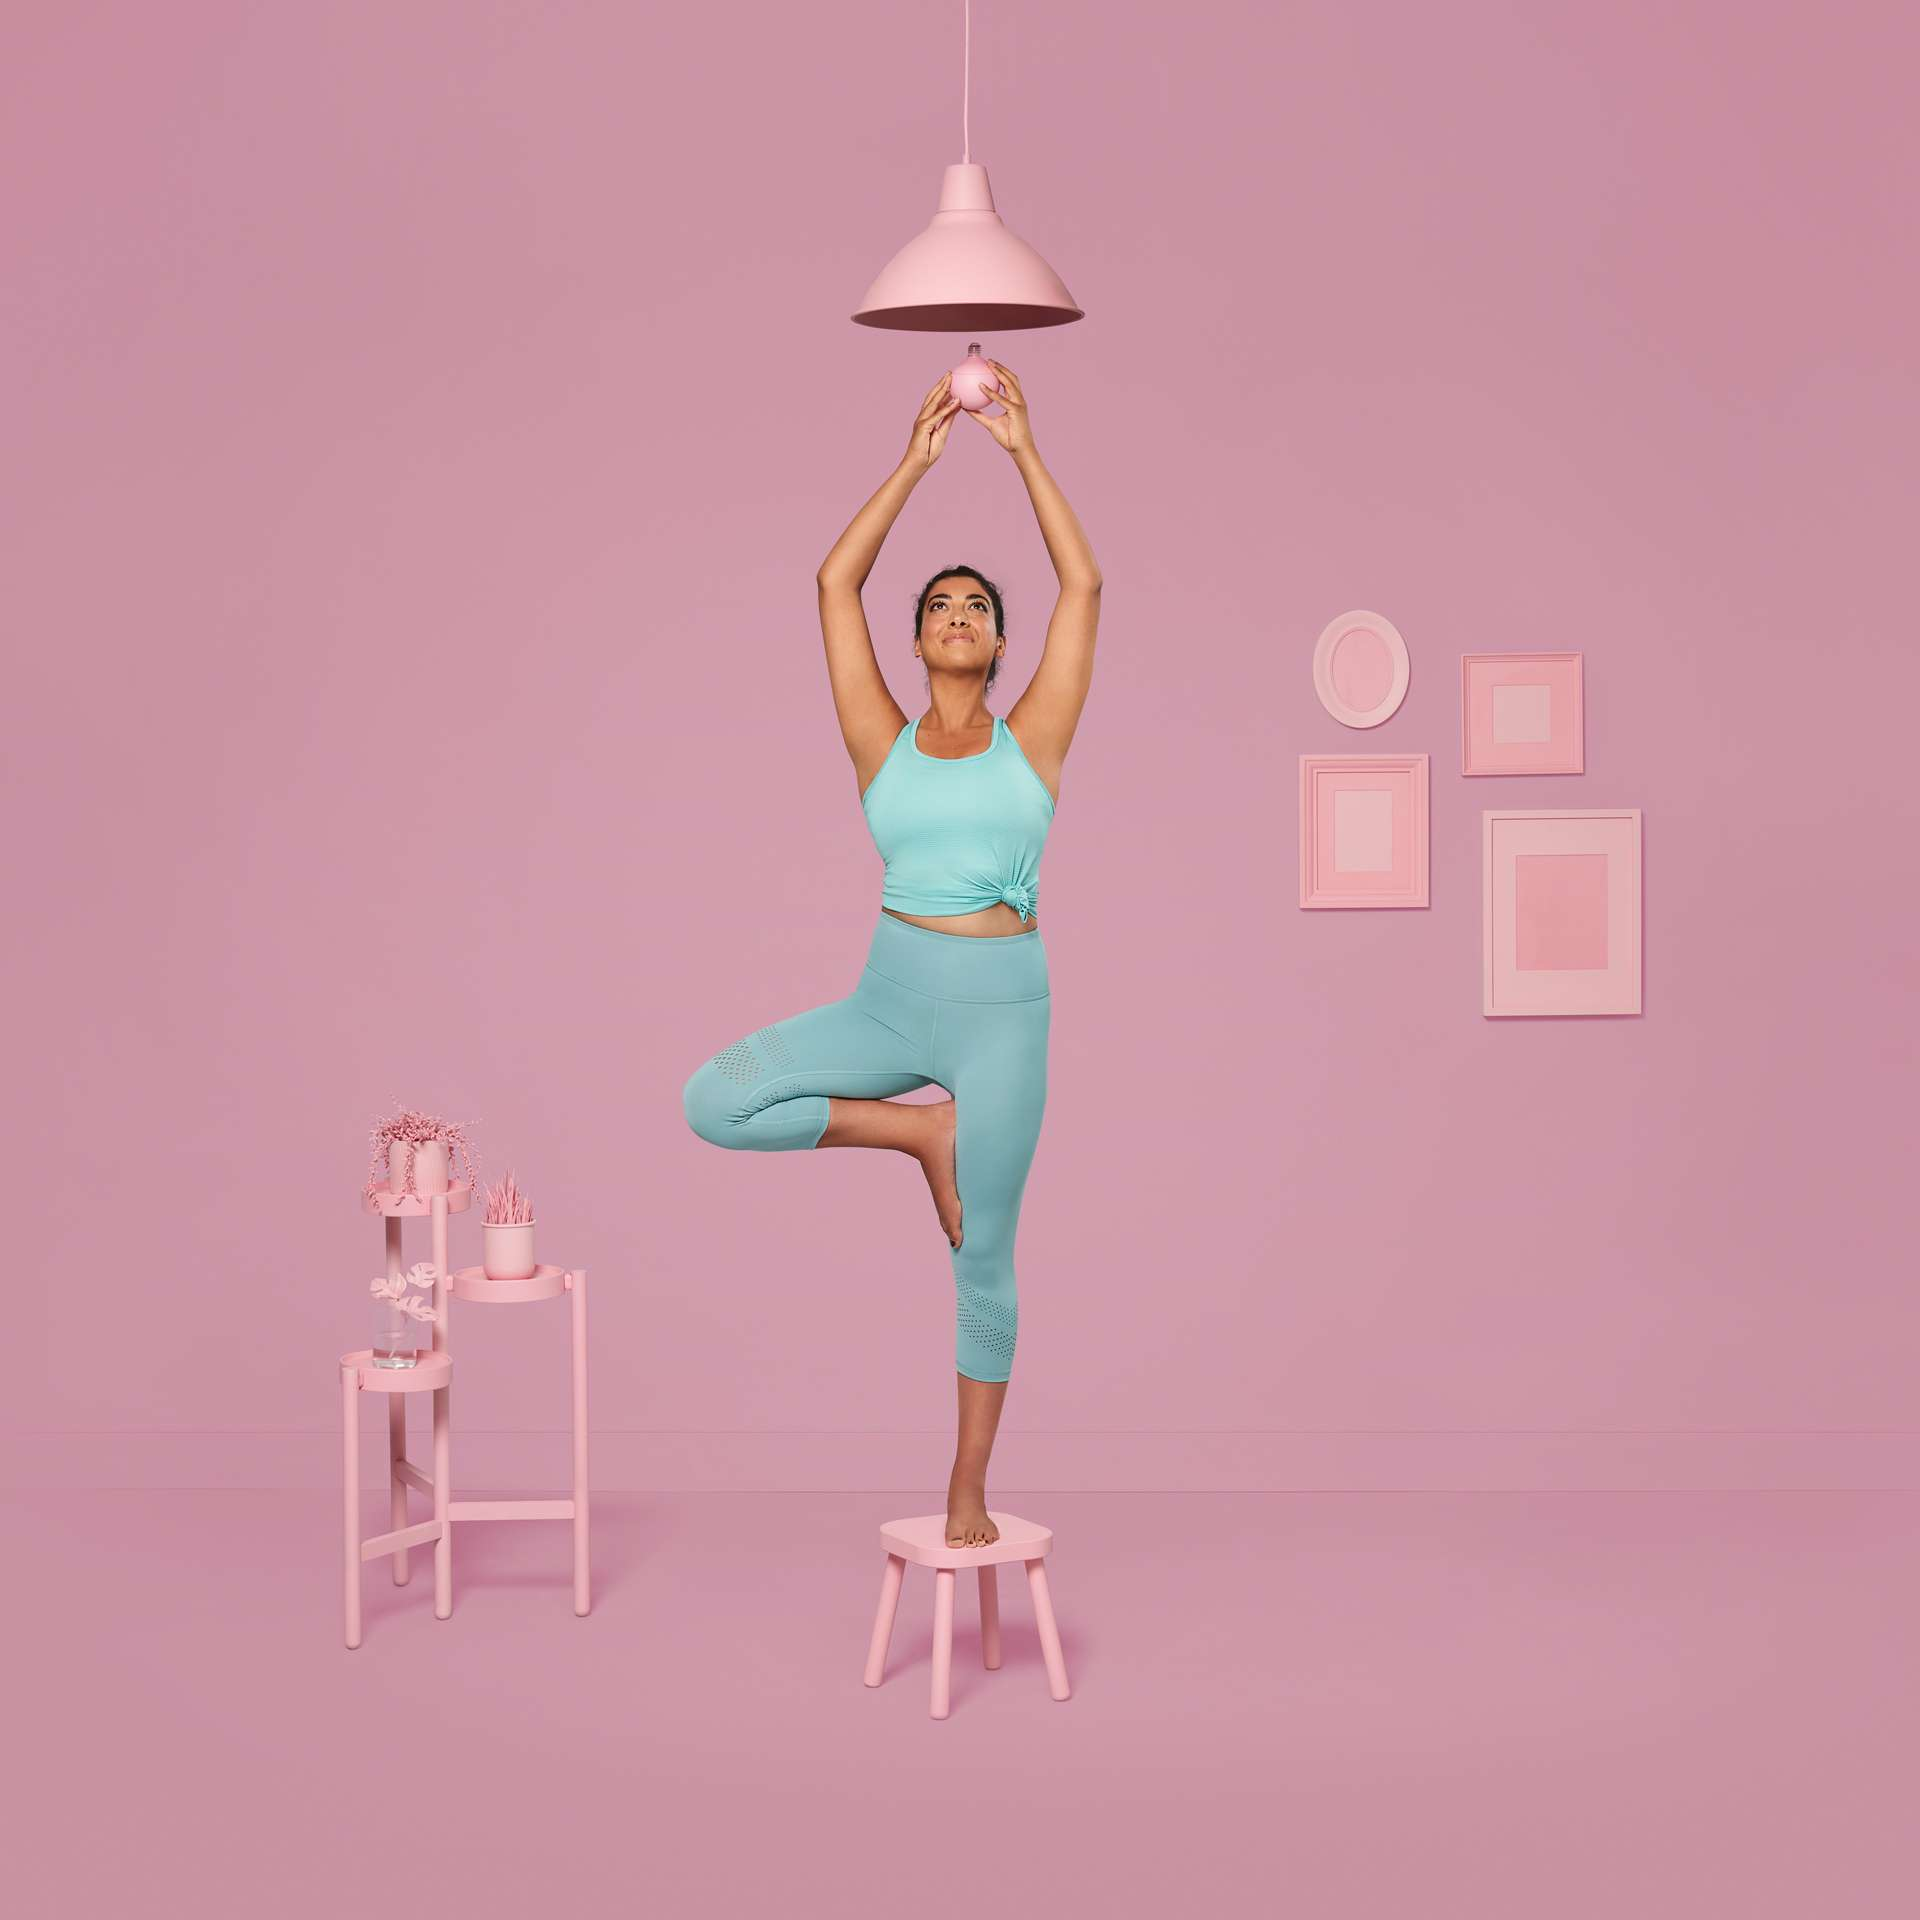 white women in a tree yoga pose changing a lightbulb dressed in blue on pink background for YMCA by Jocelyn Michel